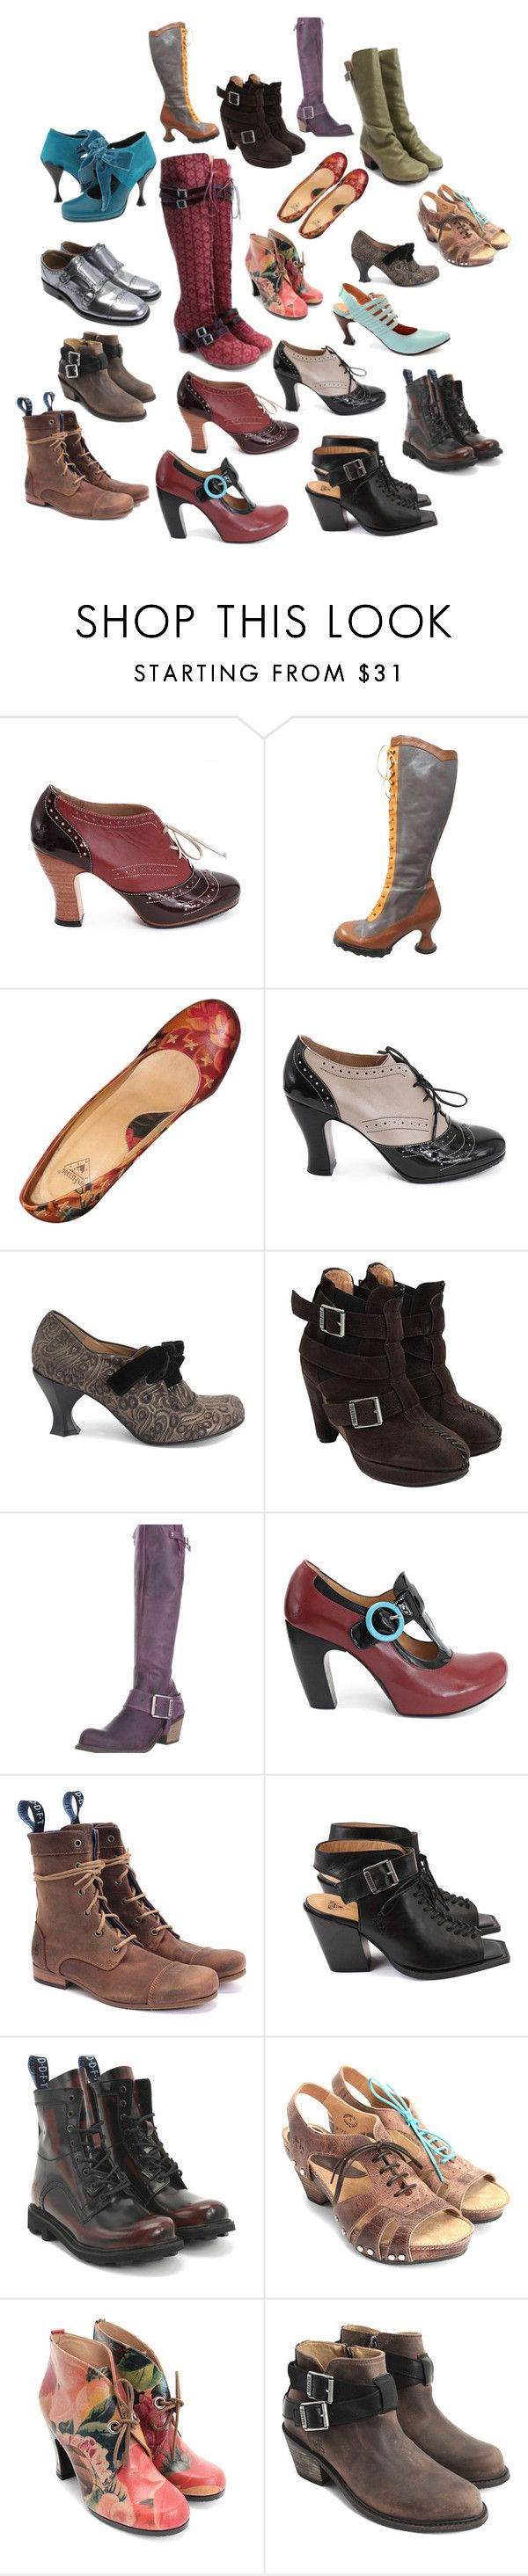 """Fluevog Fun"" by guliverlouise ❤ liked on Polyvore featuring John Fluevog"